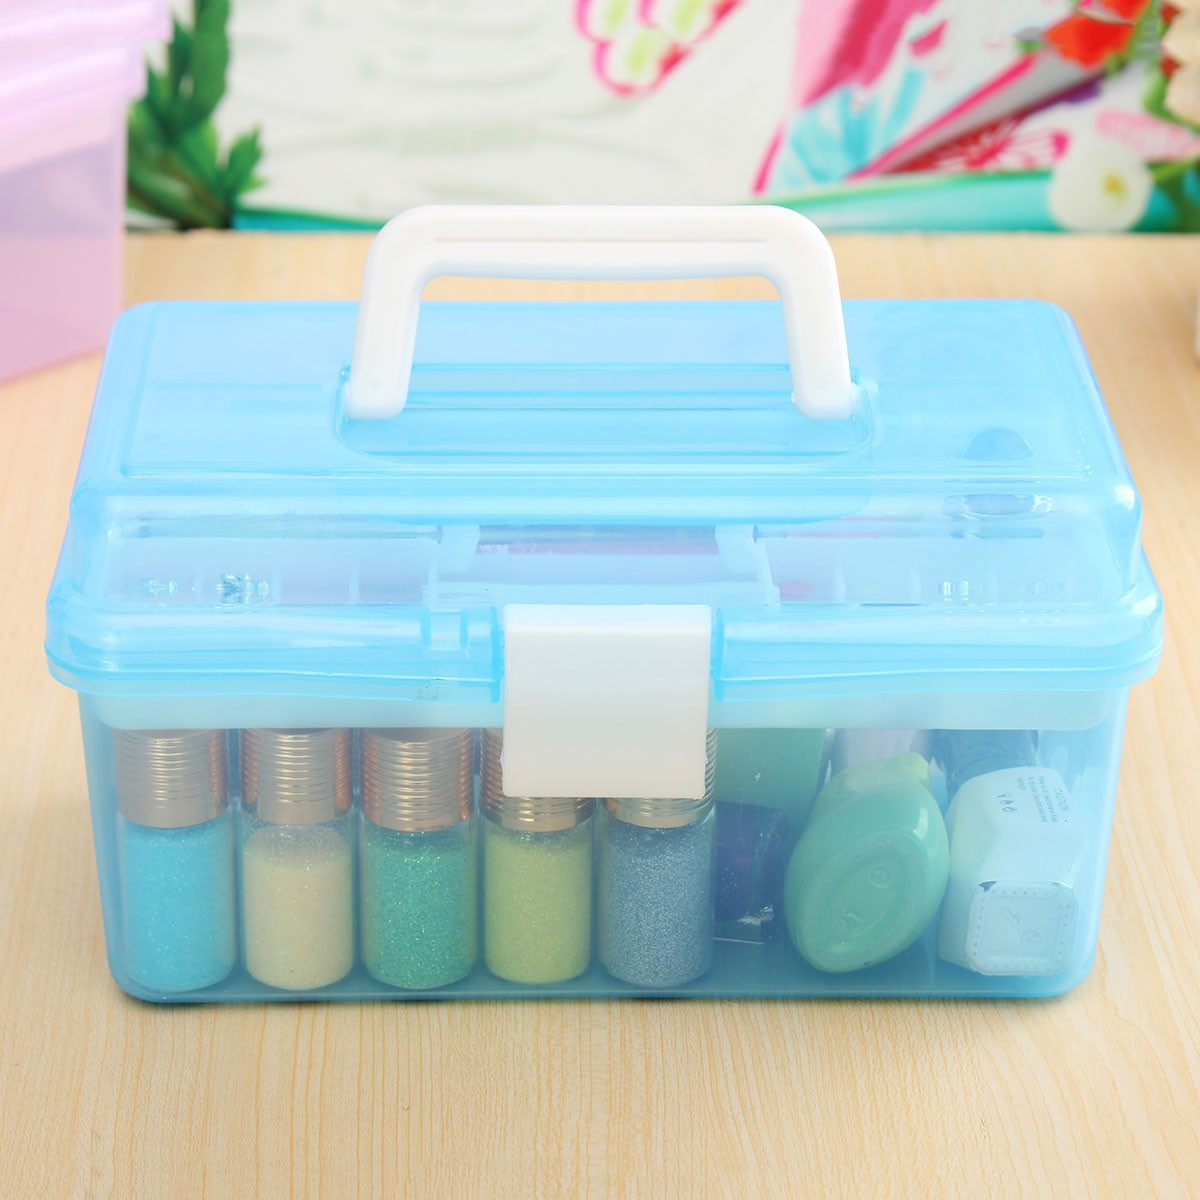 Craft supply storage containers - 2 Layer Multi Plastic Empty Storage Case Box Nail Art Craft Makeup Collection Tool Box Supplies